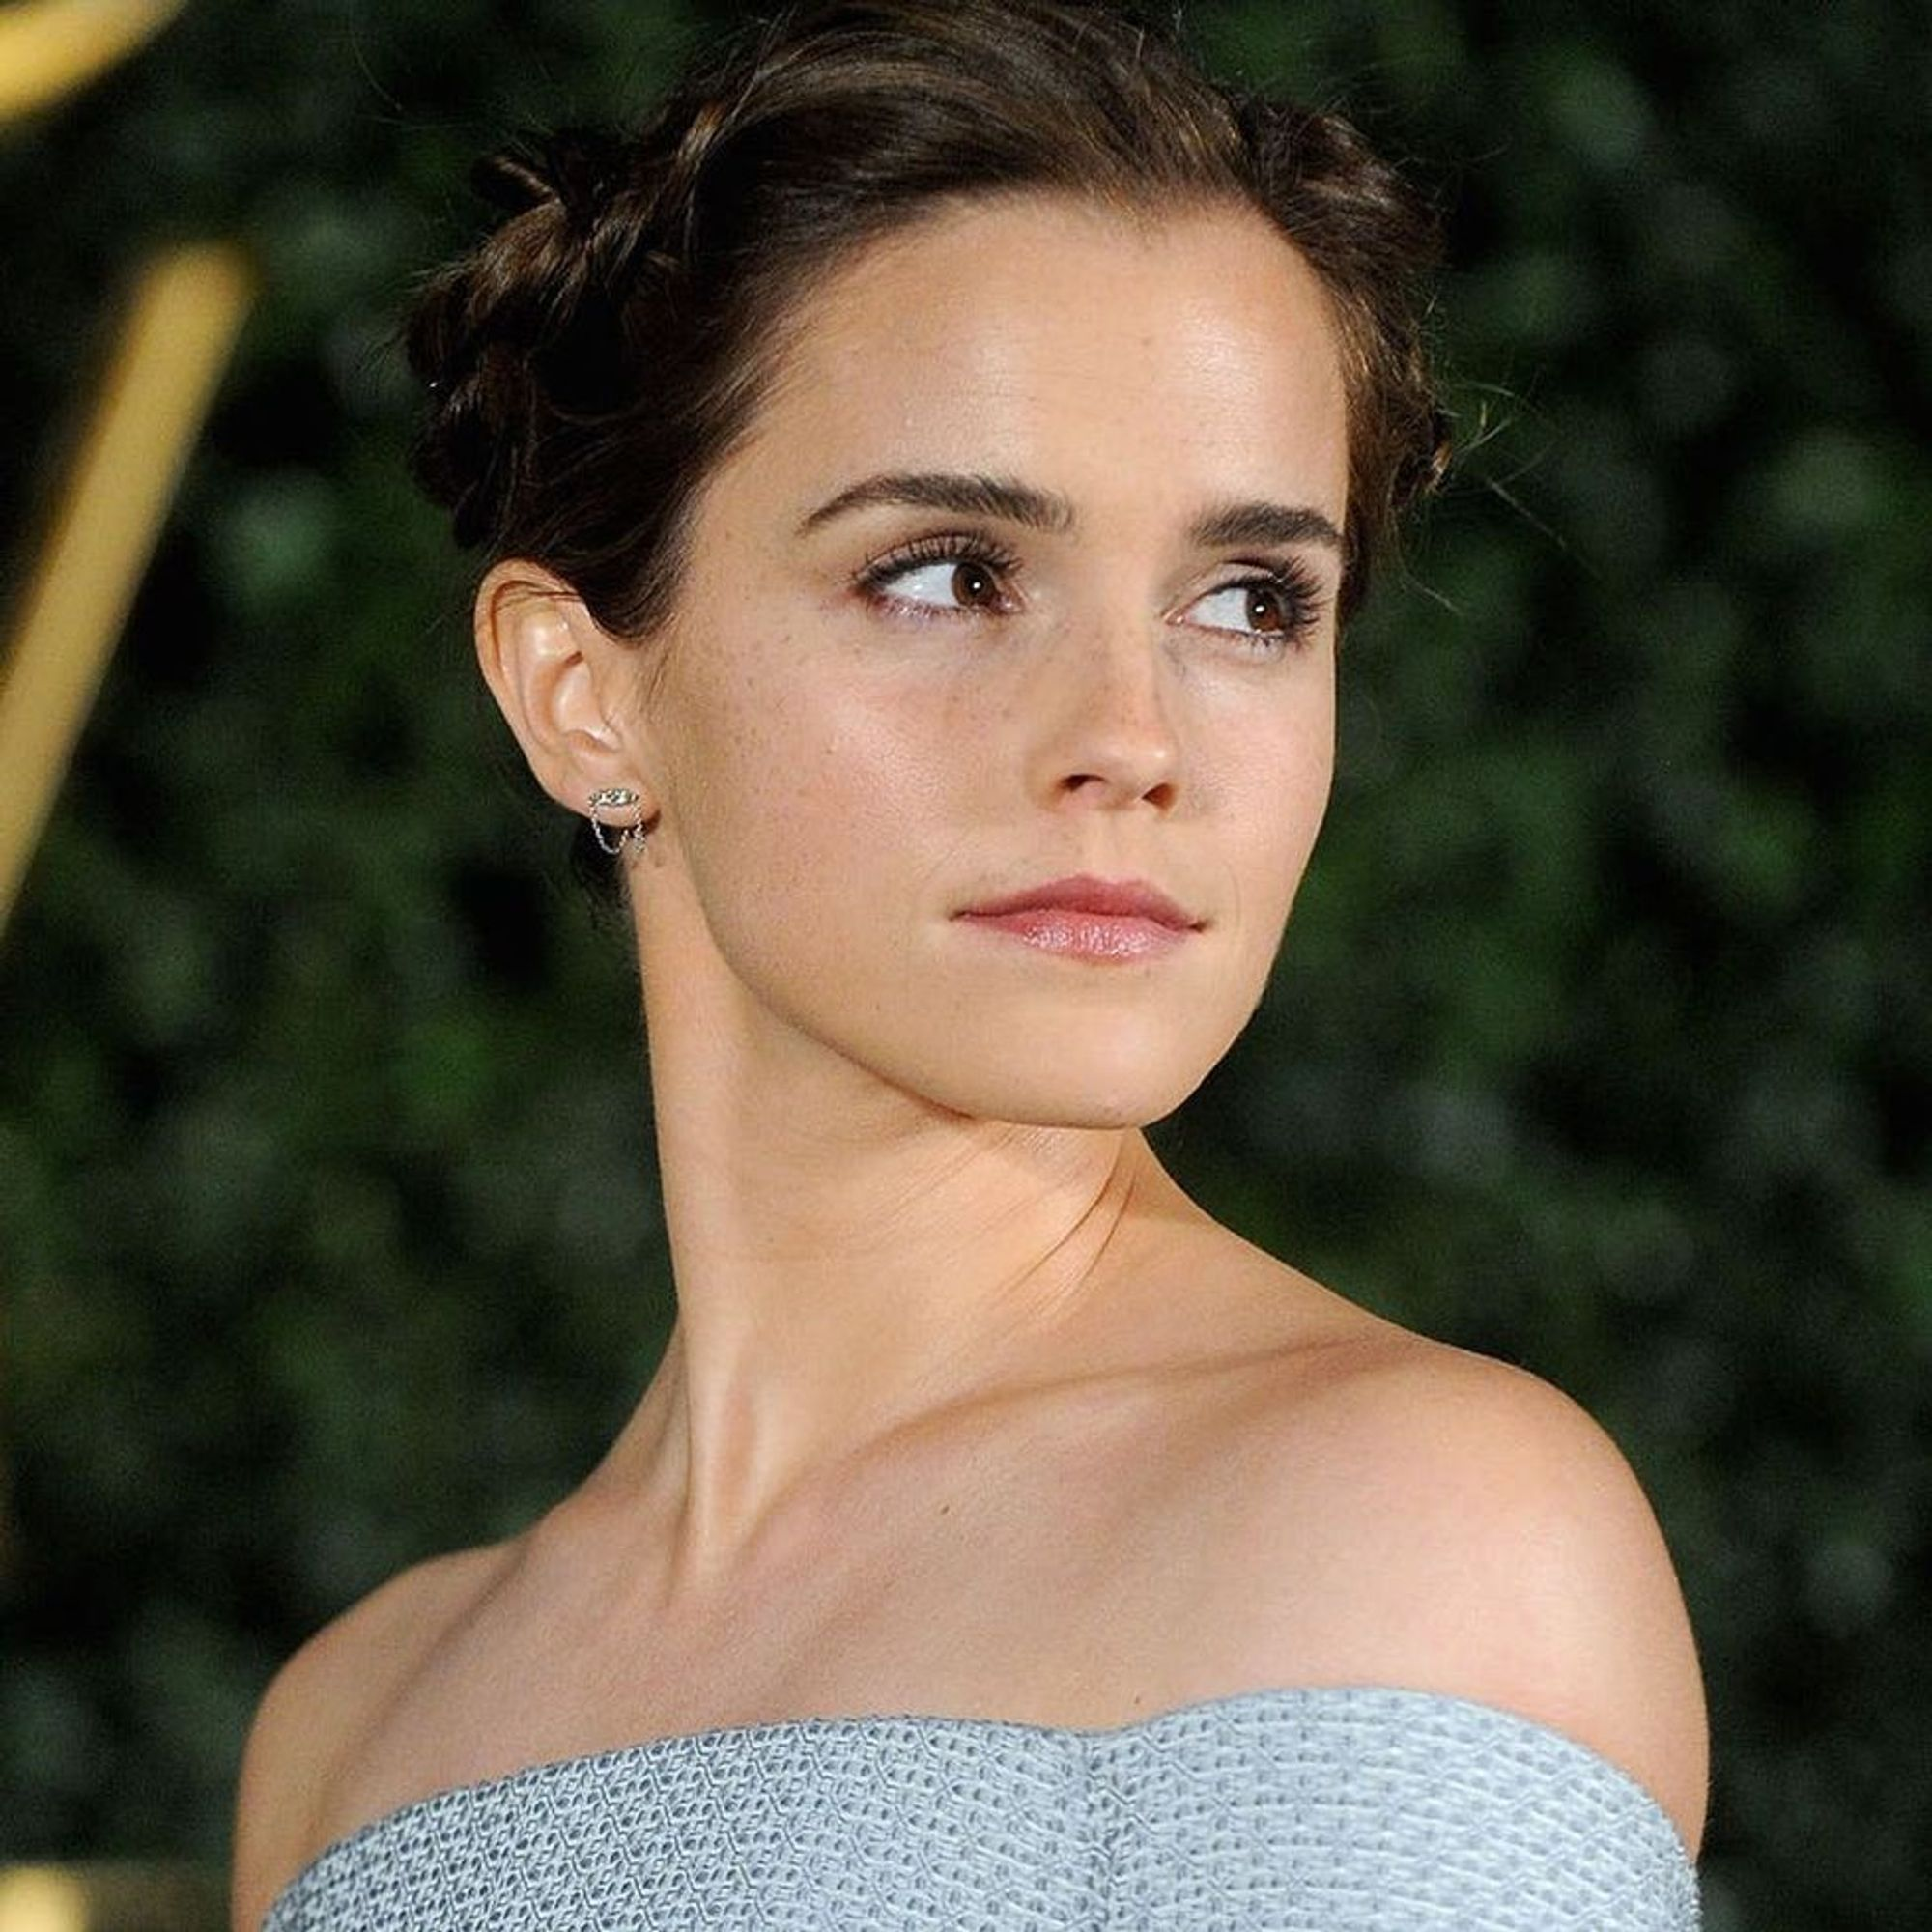 Emma Watson Just Became Hollywoods Latest Photo Hacking